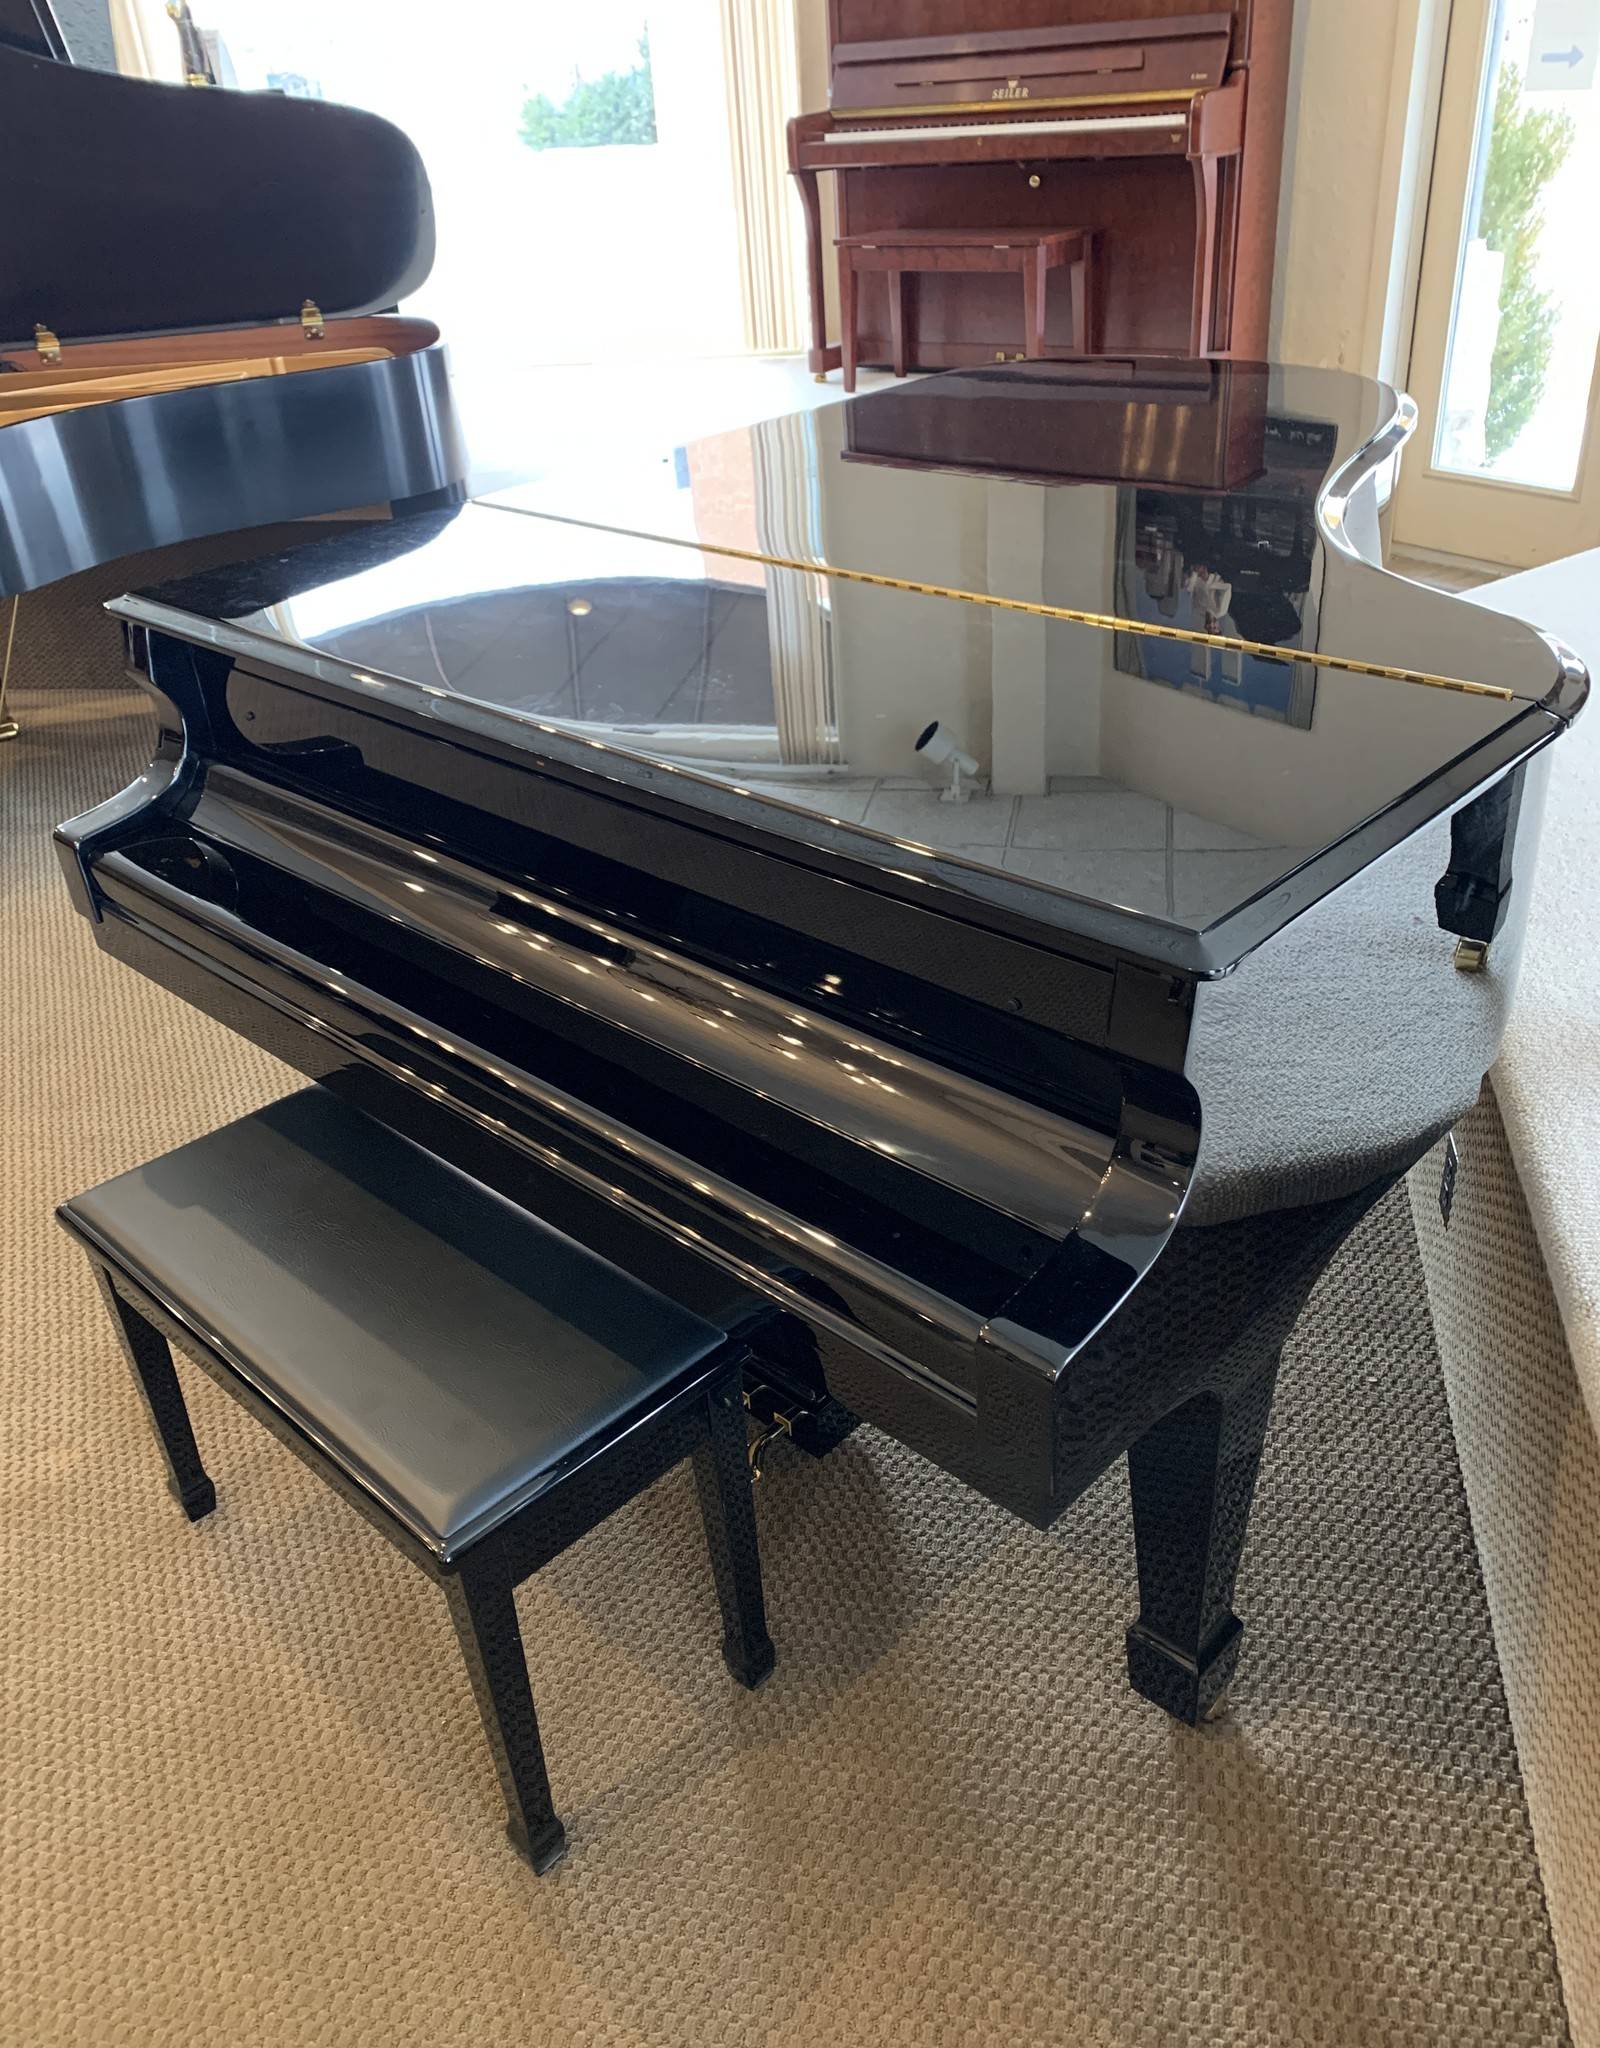 Knabe Wm. Knabe WKG 70 7' Conservatory Artist Grand Piano (High Polish Ebony with High Polish Rosewood Accents and Inner Rim)